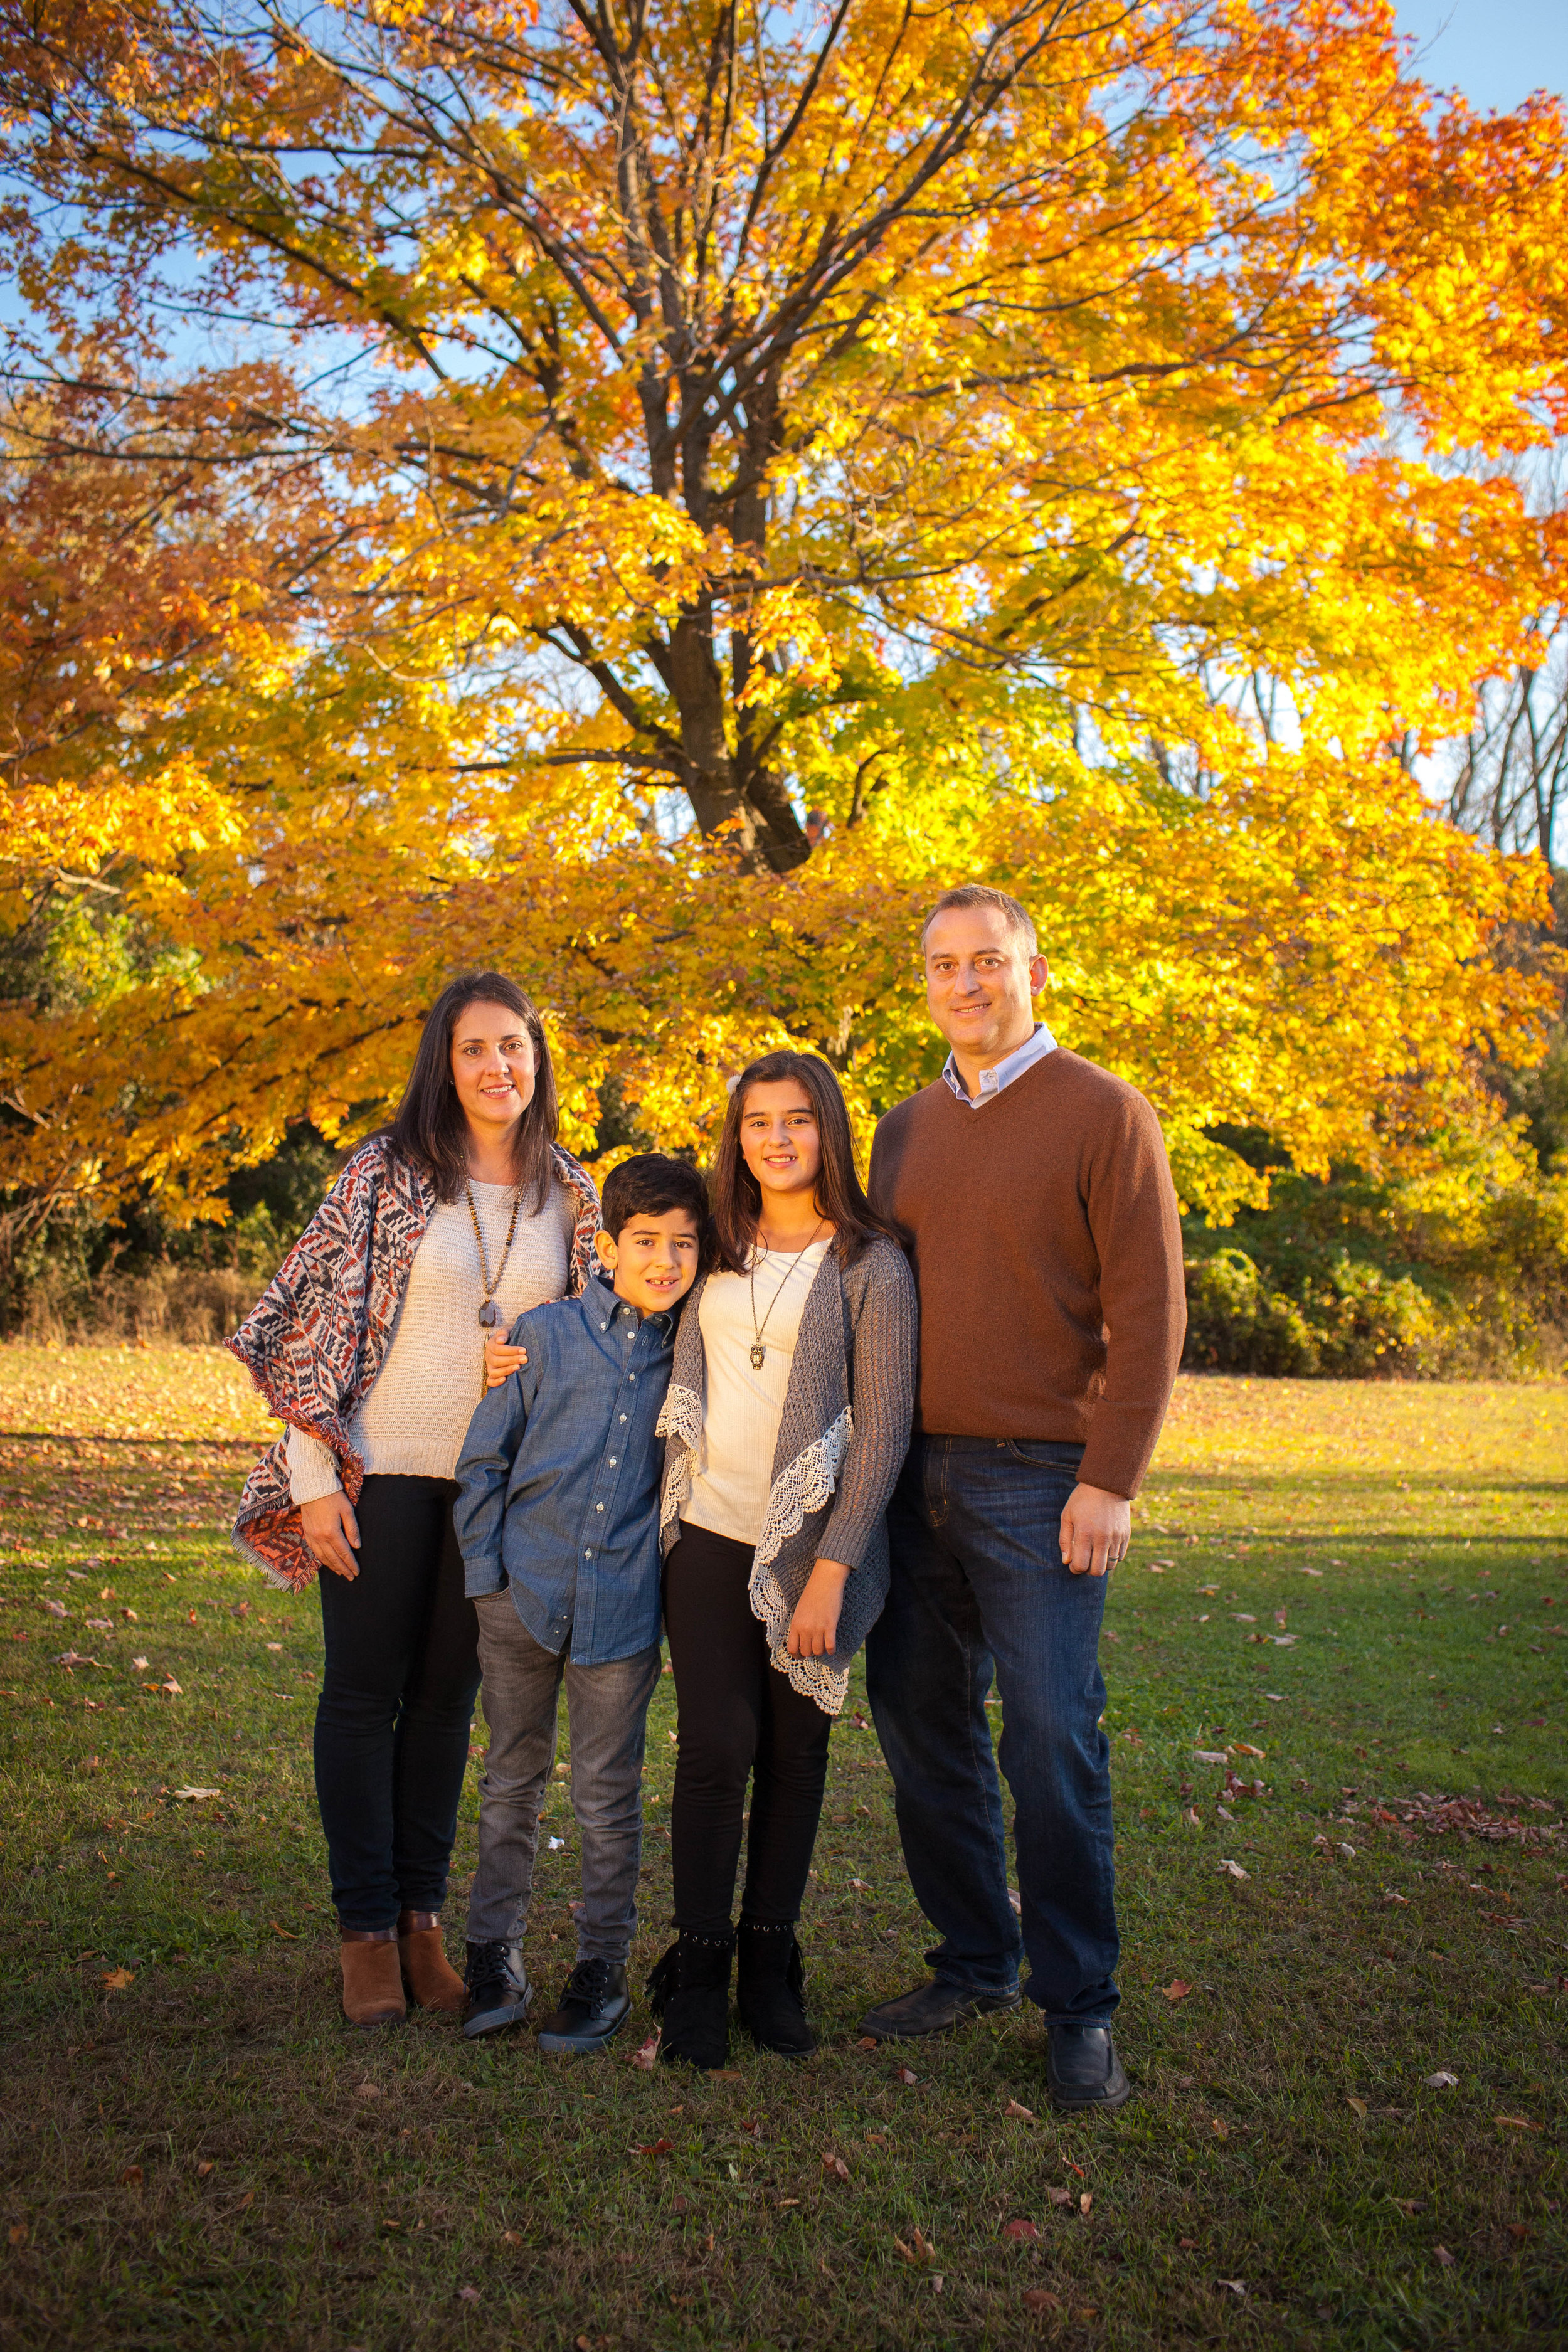 Fall Family Photography in Schaumburg